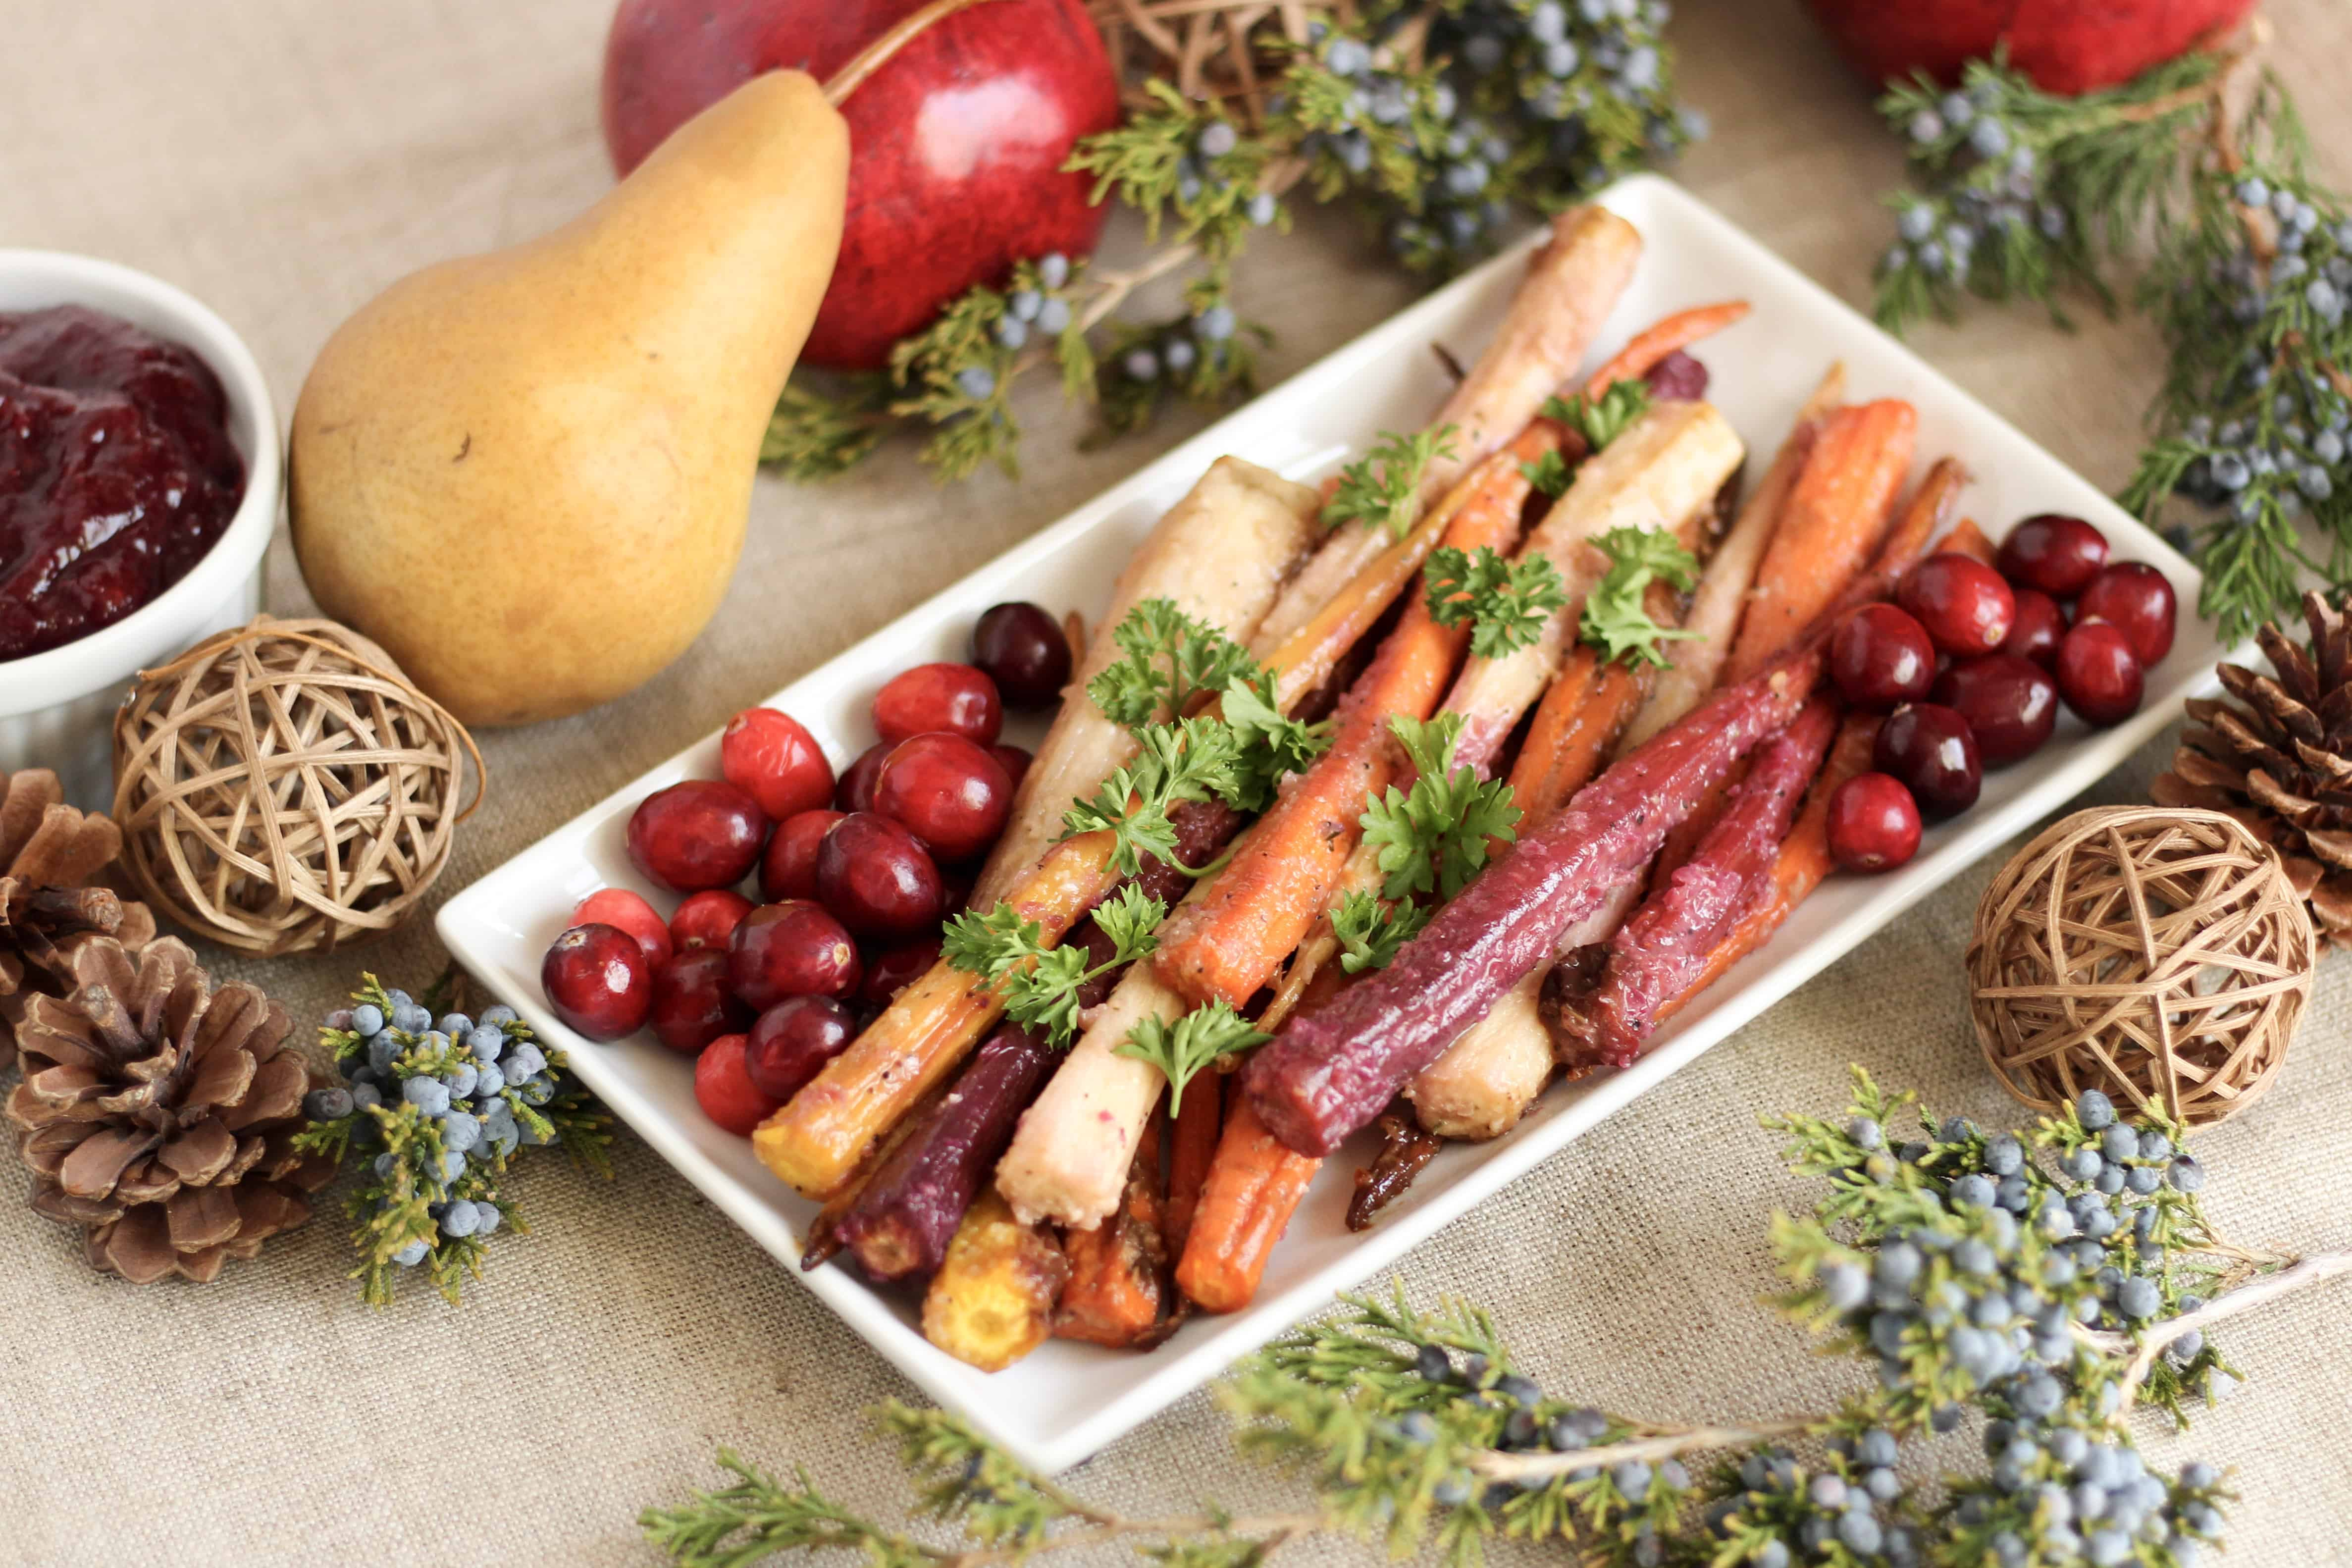 Simplify Holiday Meals With The Whole Foods E Market